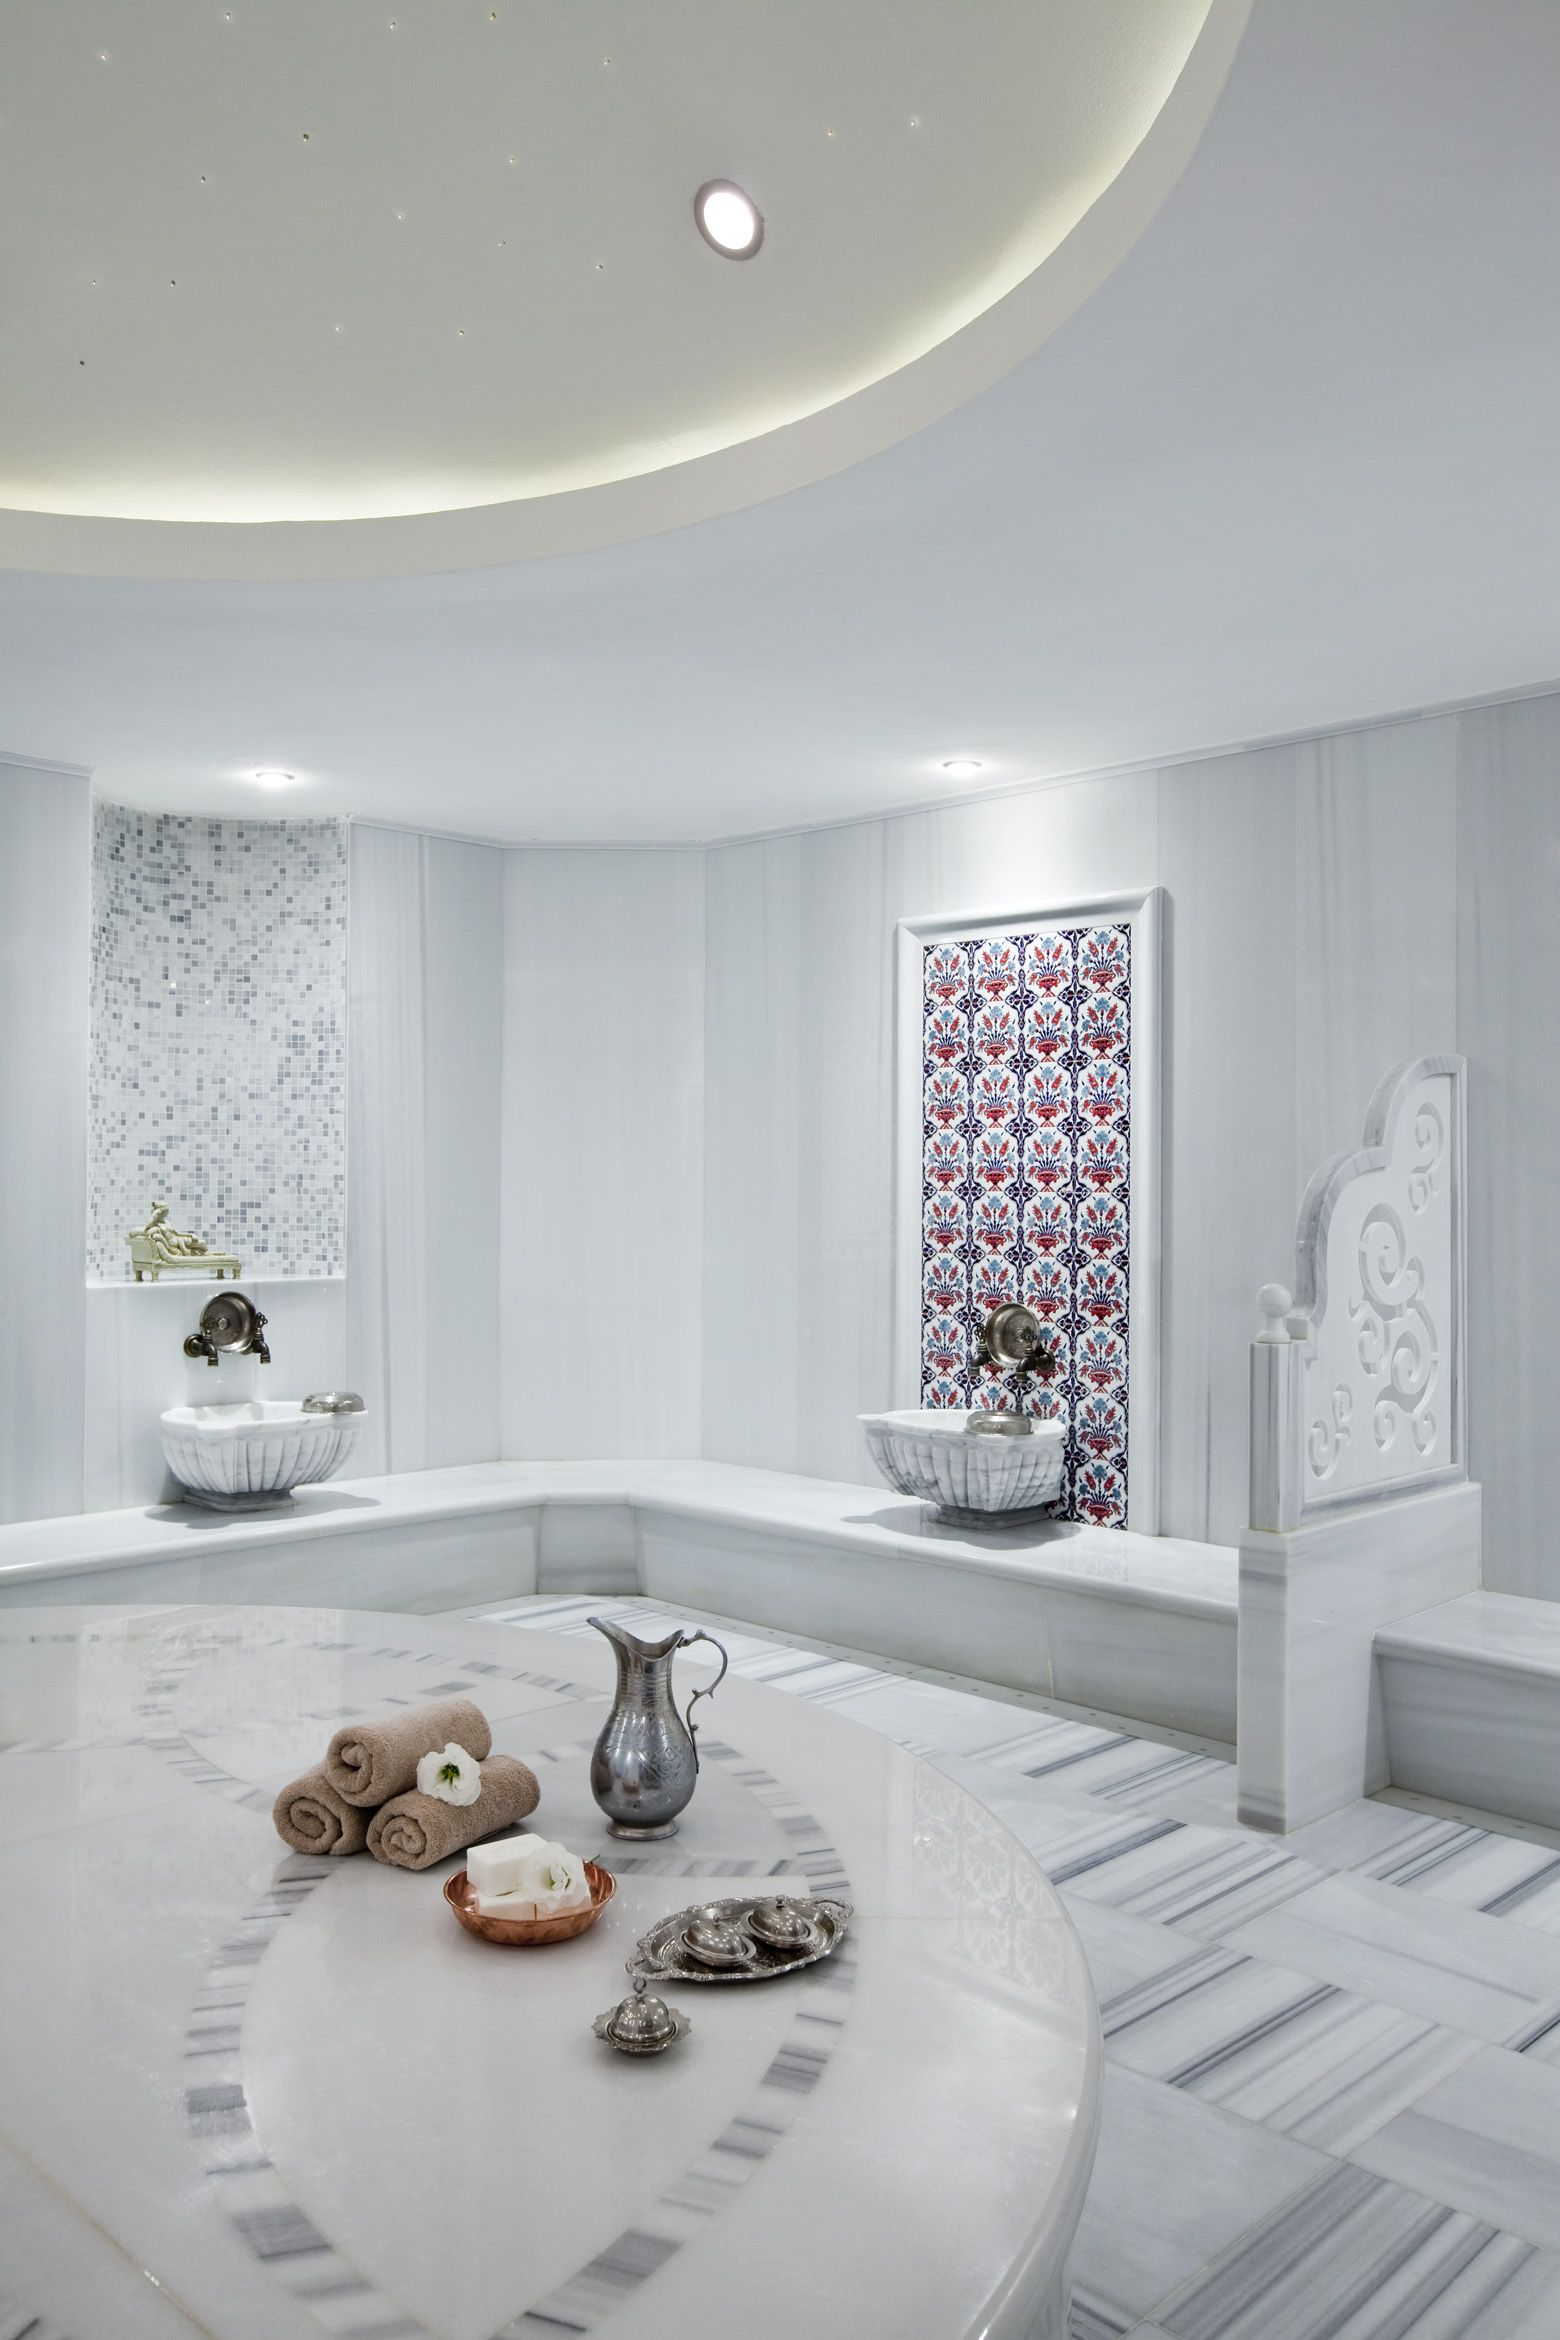 Wyndham Ankara on | Türkiye | Pinterest | Turkish bath, Bath and Spa